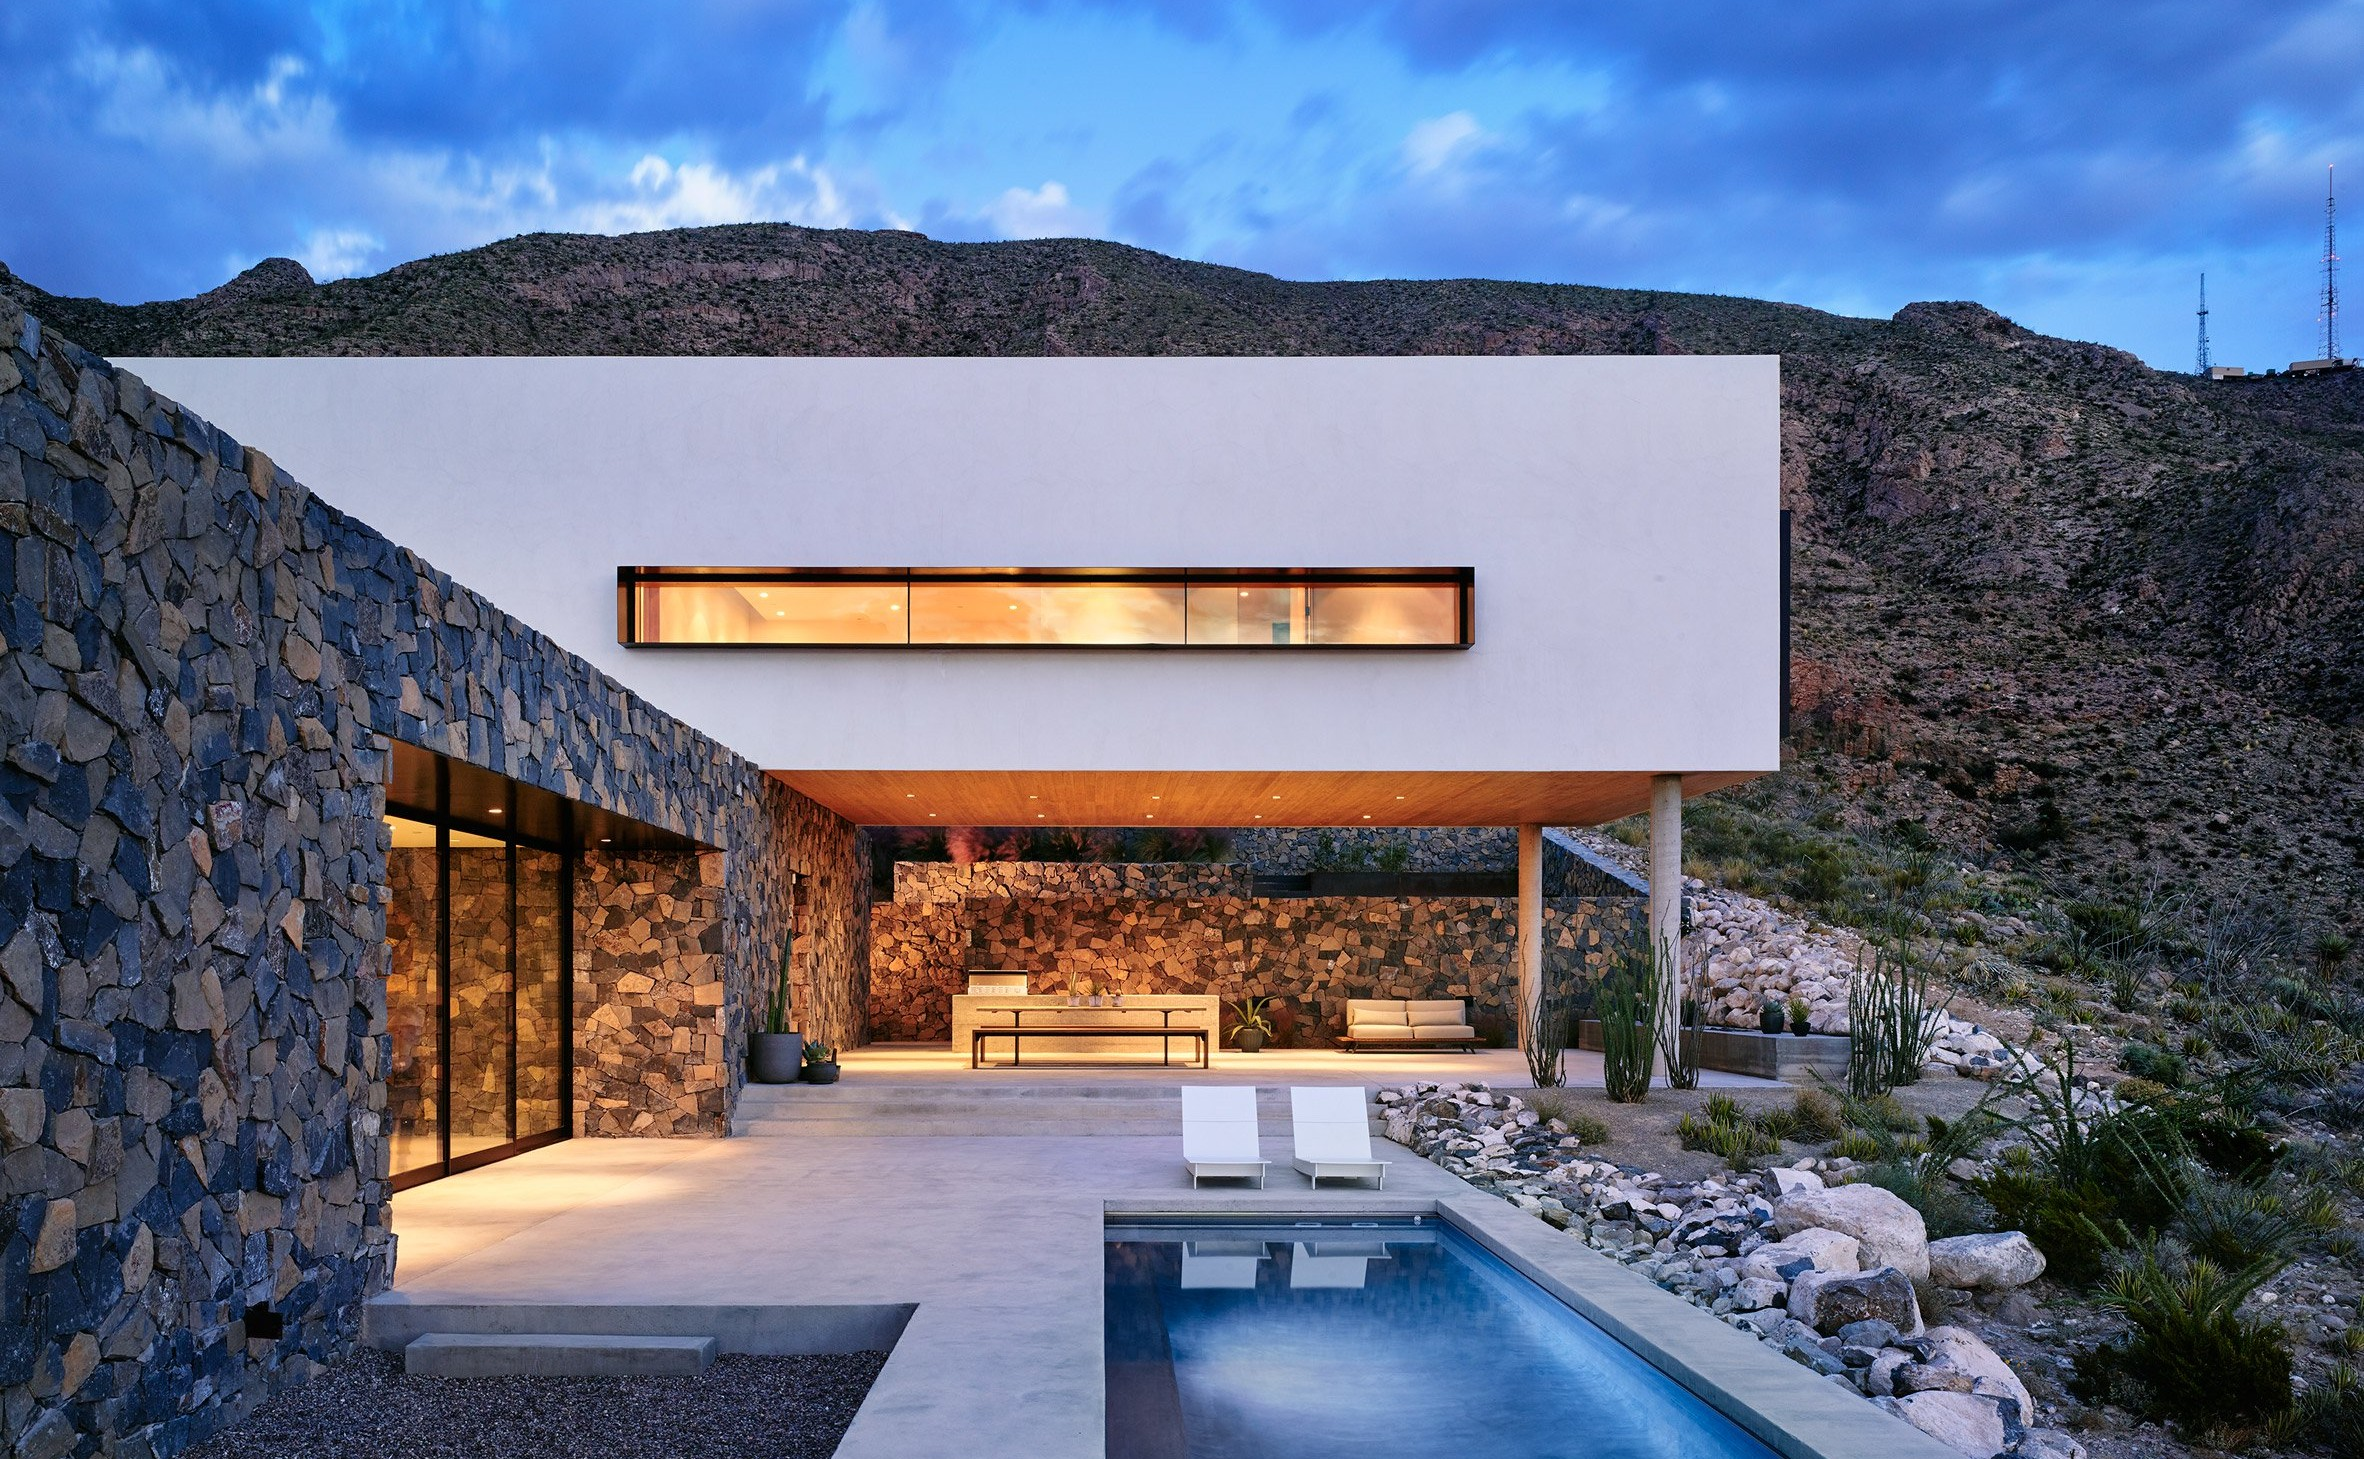 franklin-mountain-house-hazelbaker-rush-el-paso-texas-house-stone-desert0A_dezeen_2364_col_3